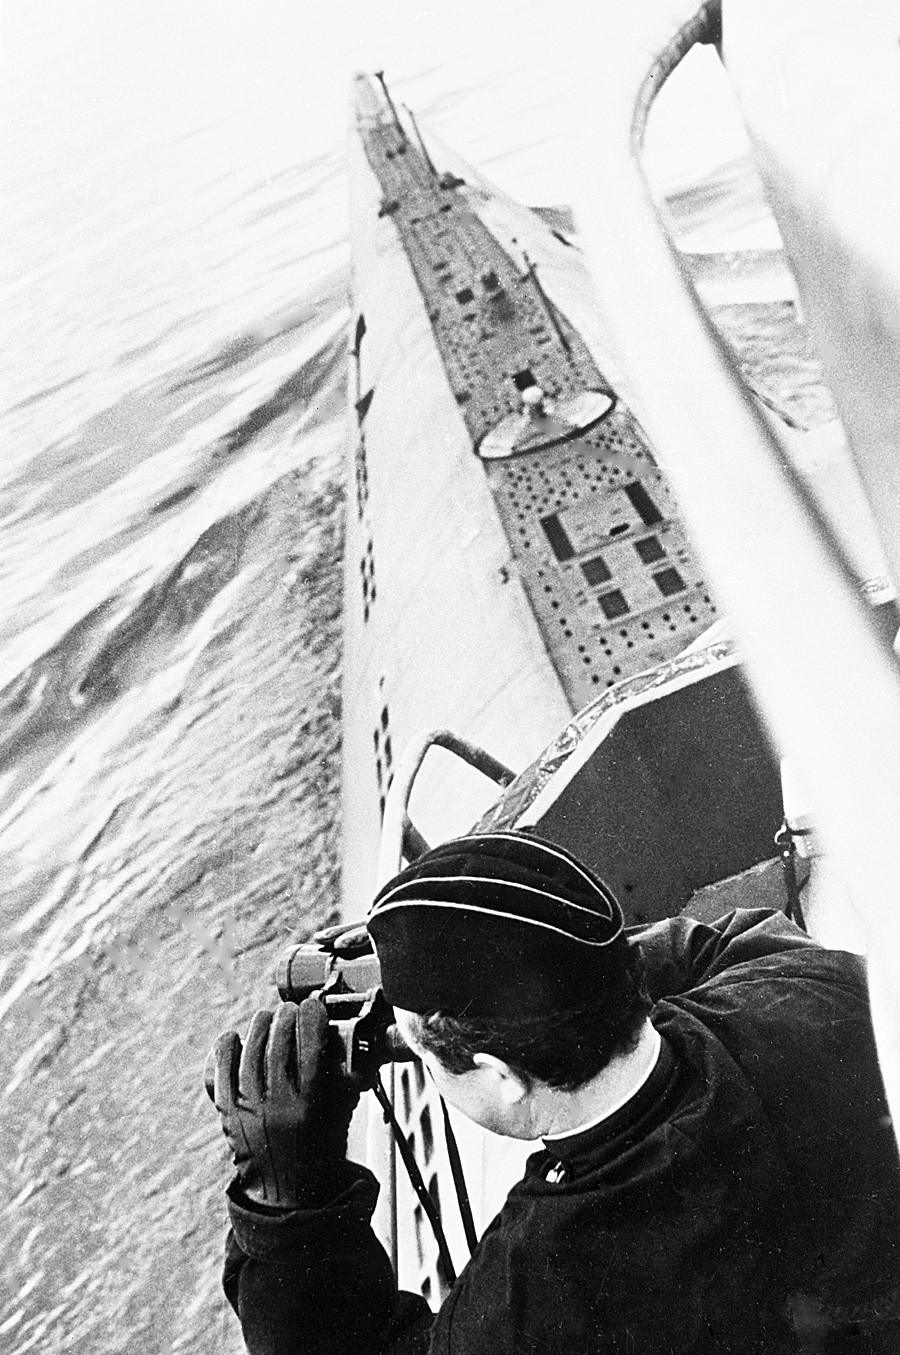 Soviet submarine commander scans the horizon through binoculars in 1968